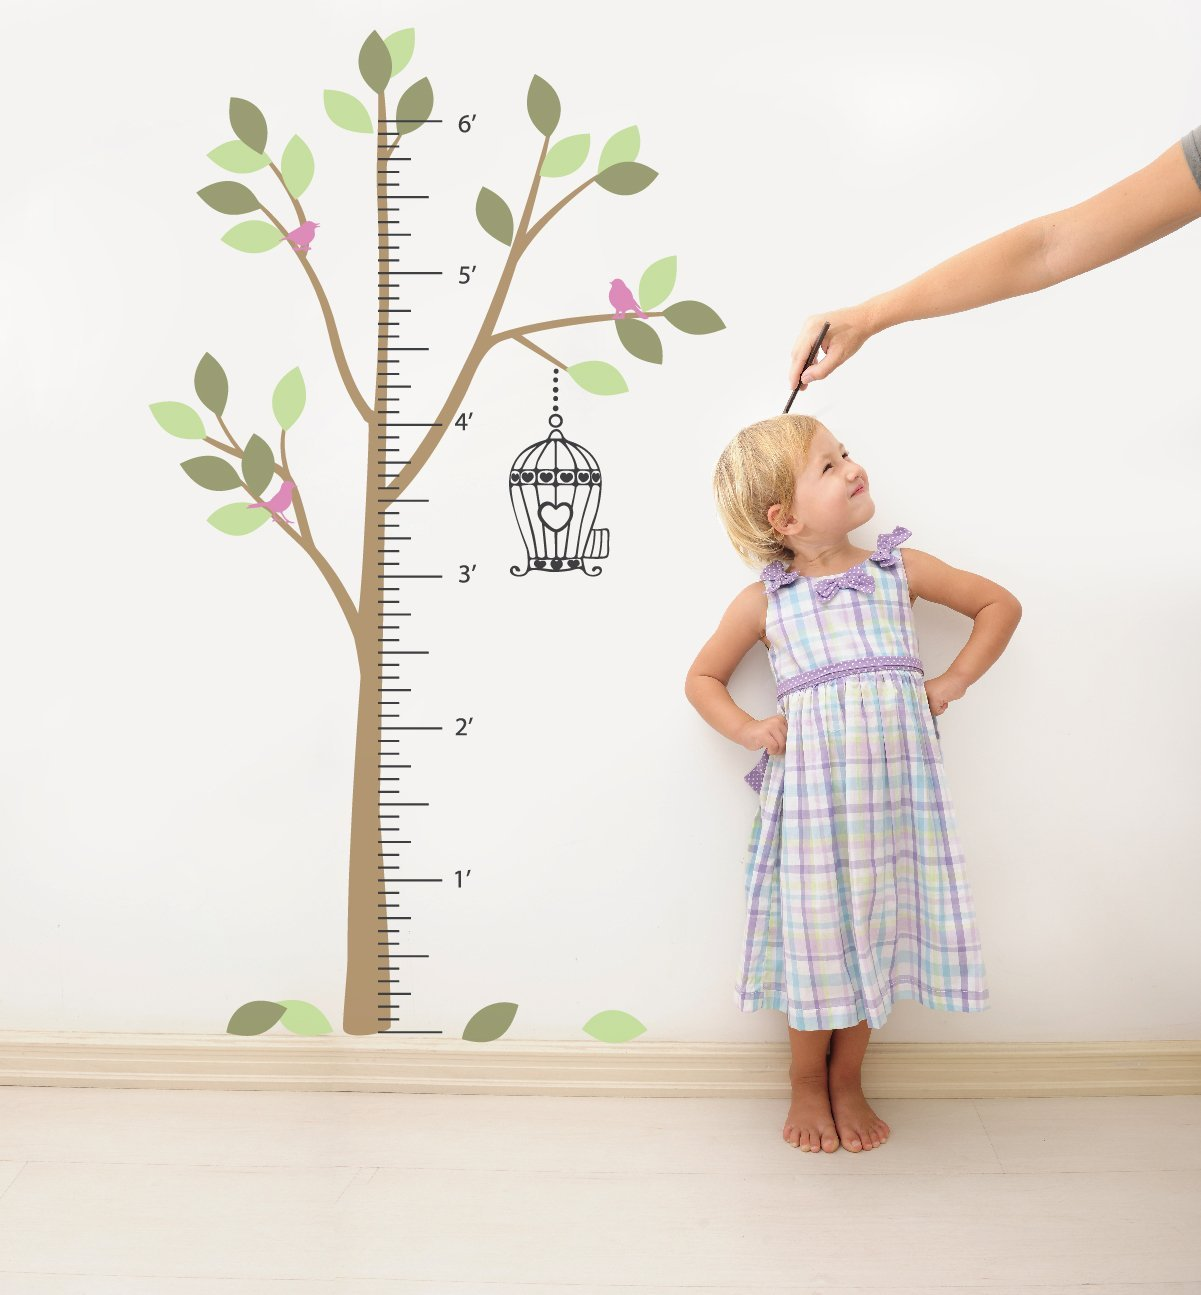 Growth Chart Tree Wall Decal Sticker for Kids Height Ruler with Birdcage and Birds Vinyl Transfer (Color Option 5, 80x46 inches) by The Decal Guru